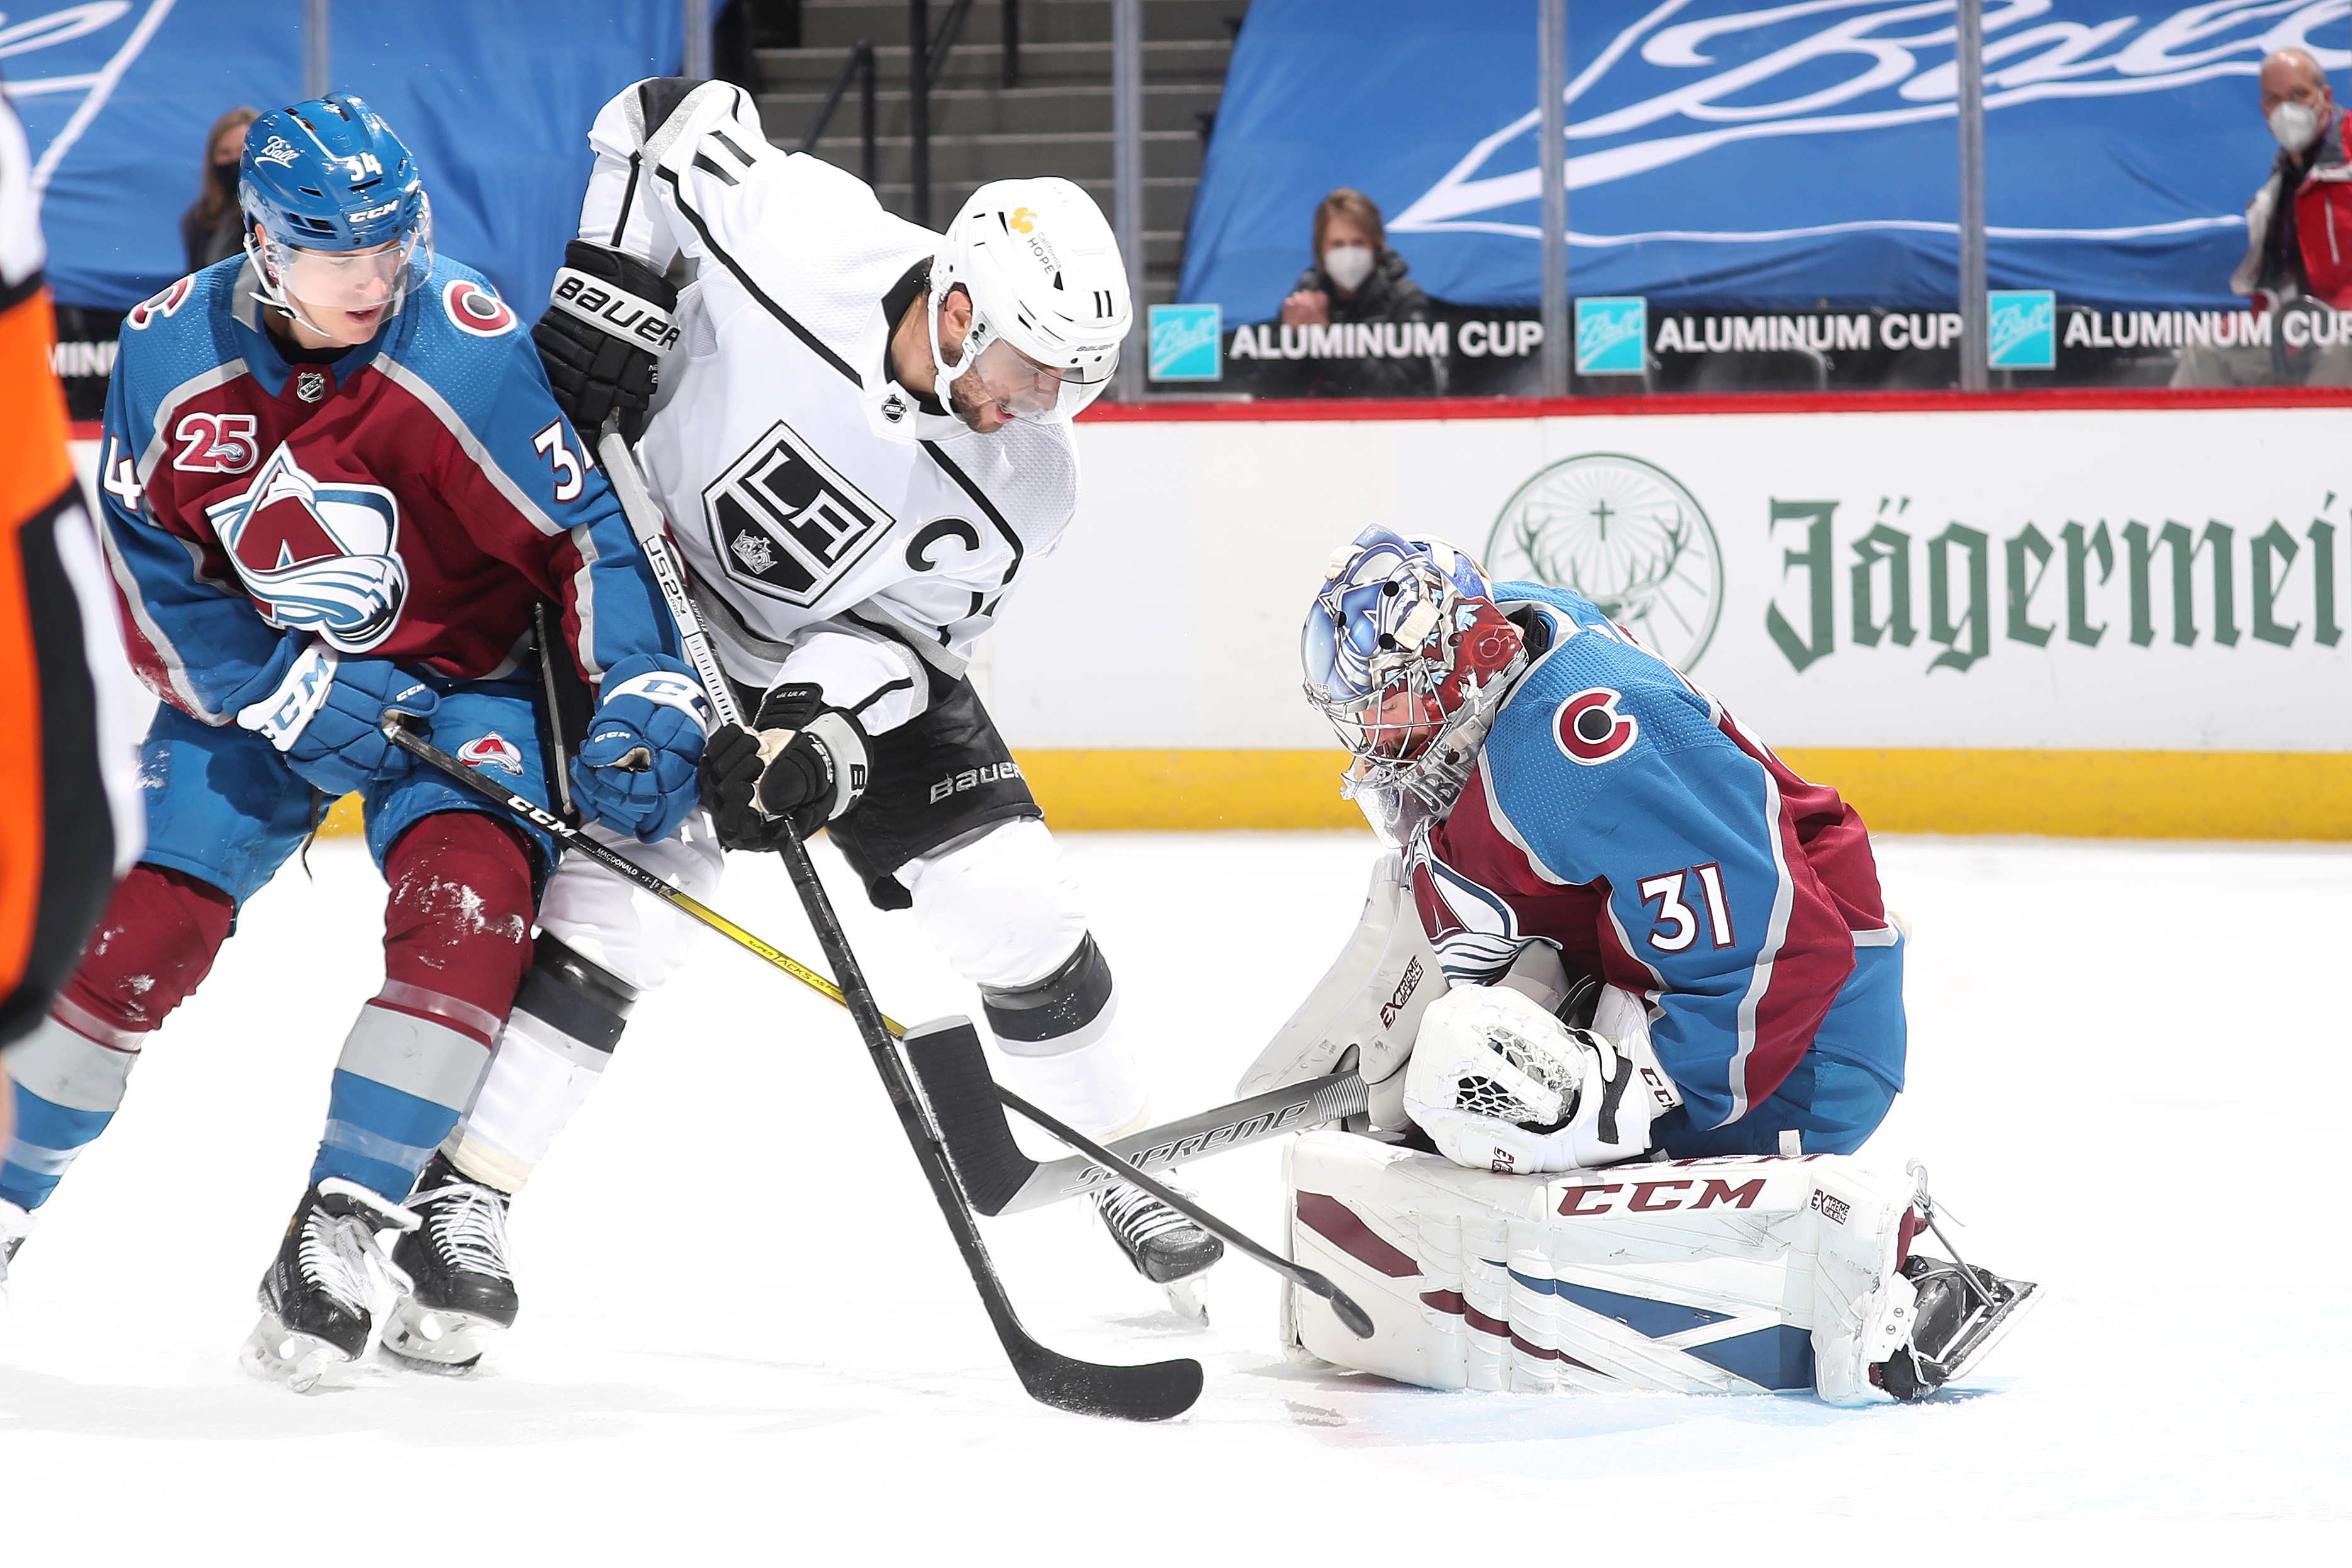 Goaltender Philipp Grubauer #31 of the Colorado Avalanche looks to make a save against Anze Kopitar #11 of the Los Angeles Kings next to teammate Jacob MacDonald #34 at Ball Arena on March 14, 2021 in Denver, Colorado. The Avalanche defeated the Kings 4-1.